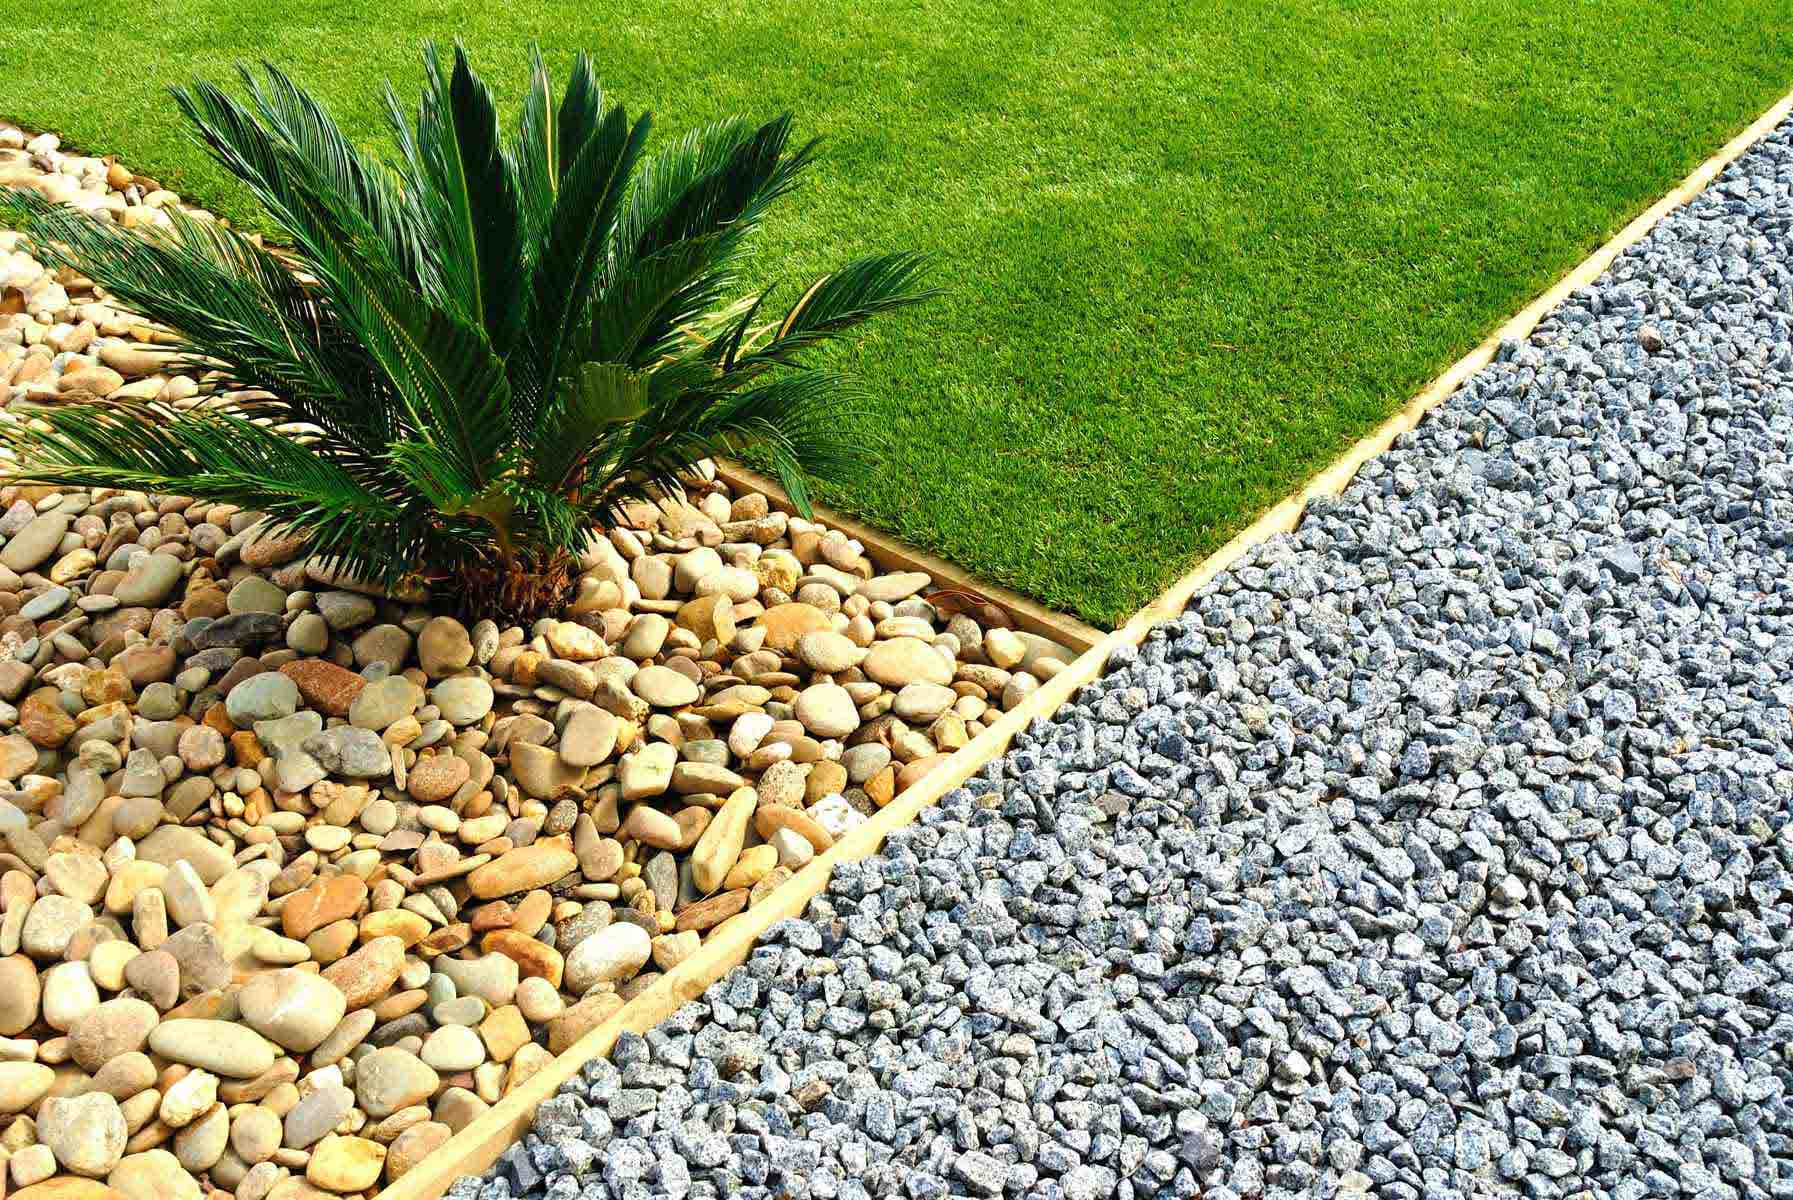 Landscaping contractor website